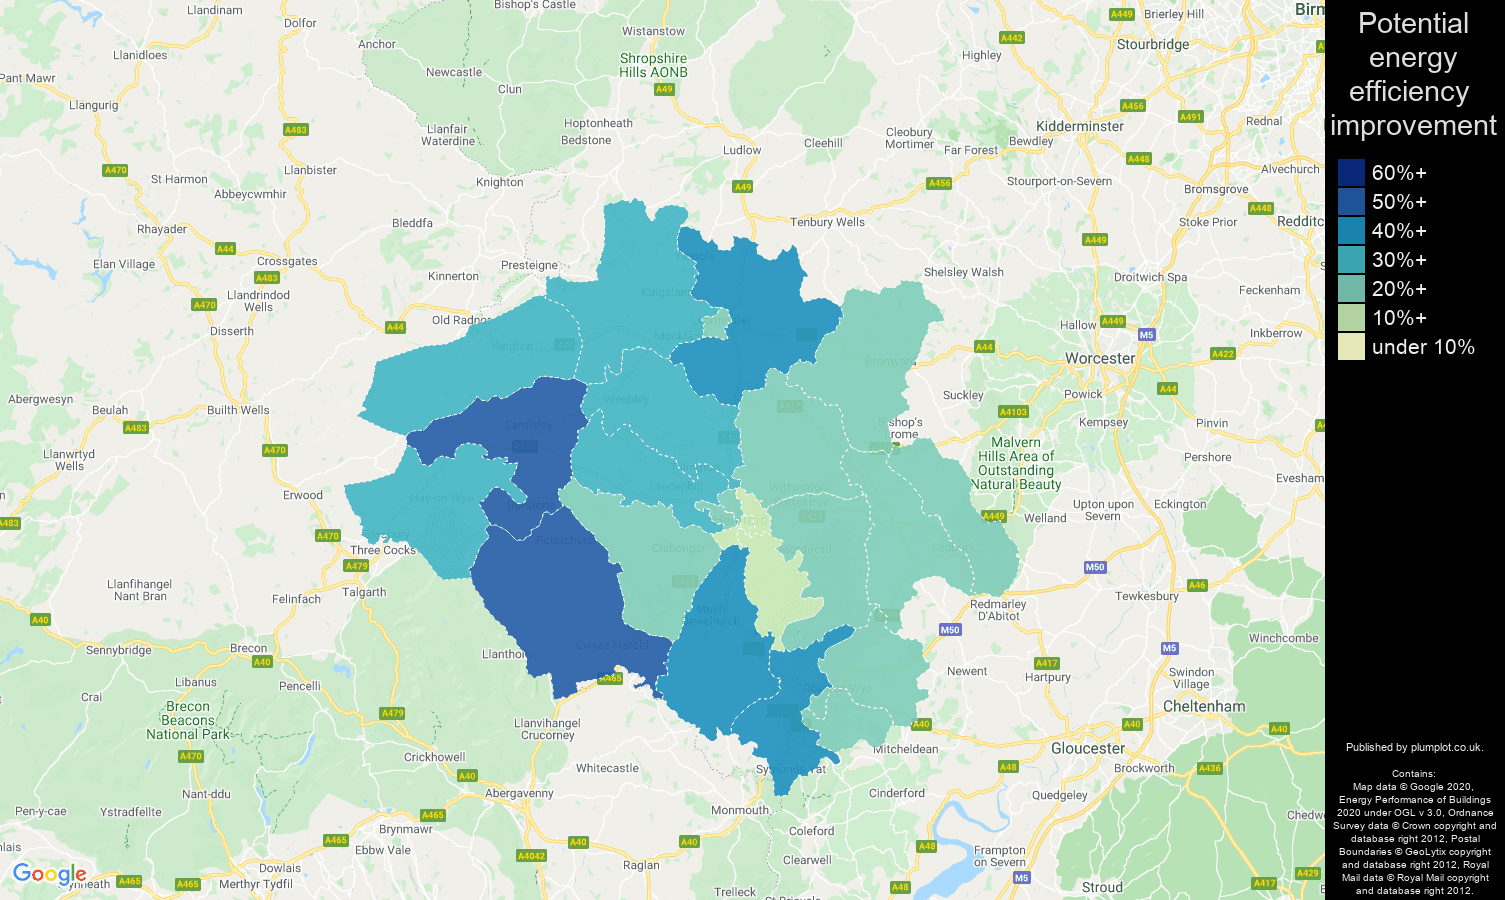 Hereford map of potential energy efficiency improvement of properties